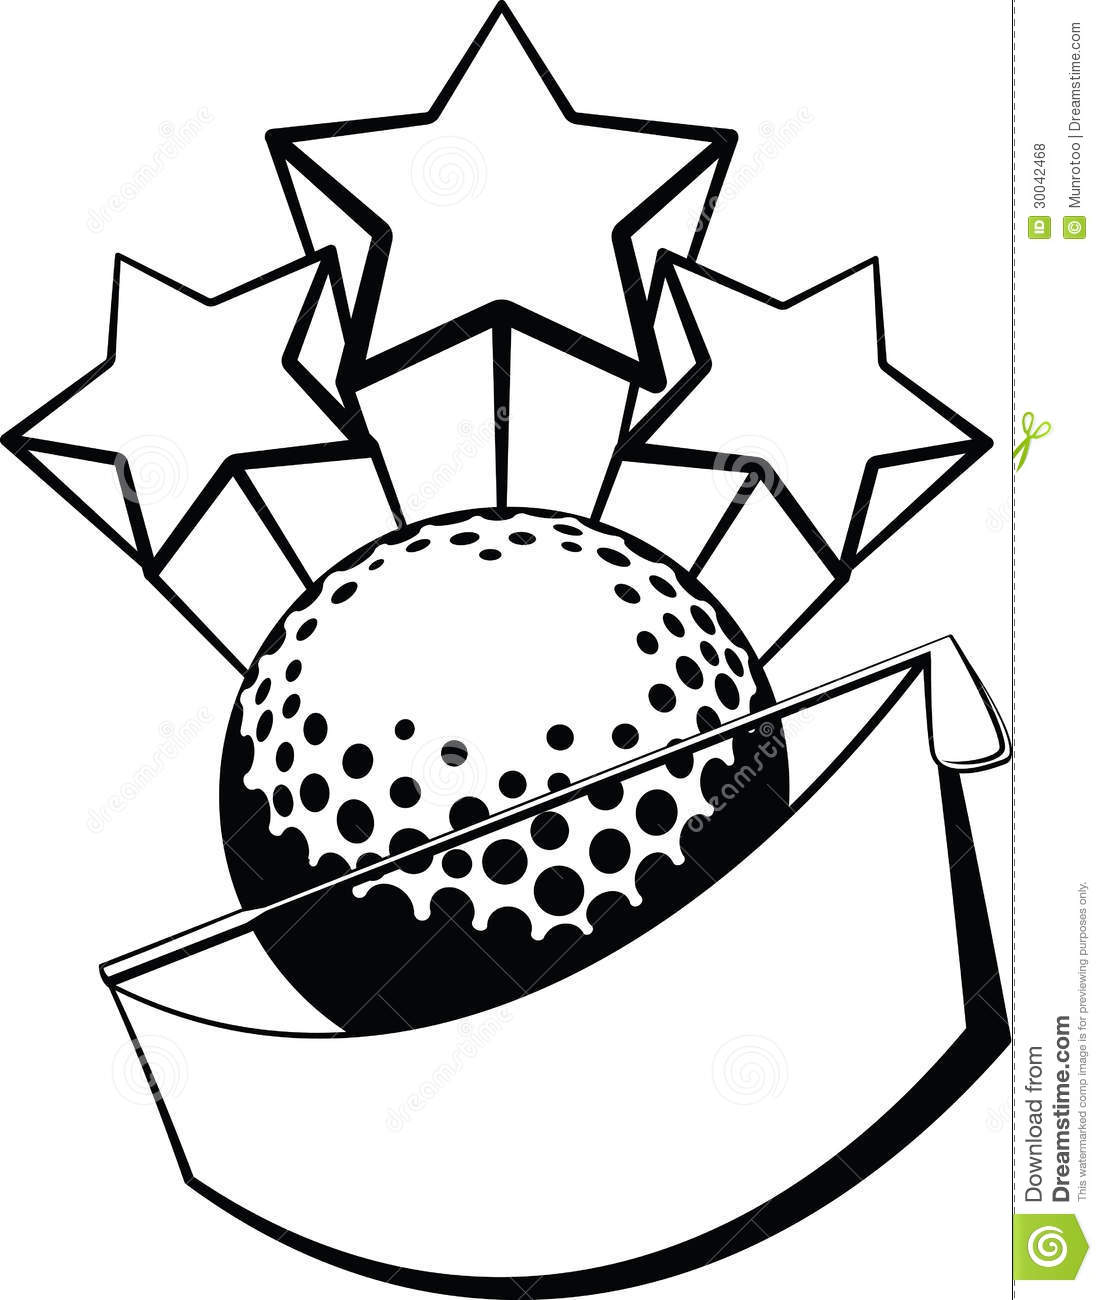 Golf Banner With Stars Royalty Free Stock Photos